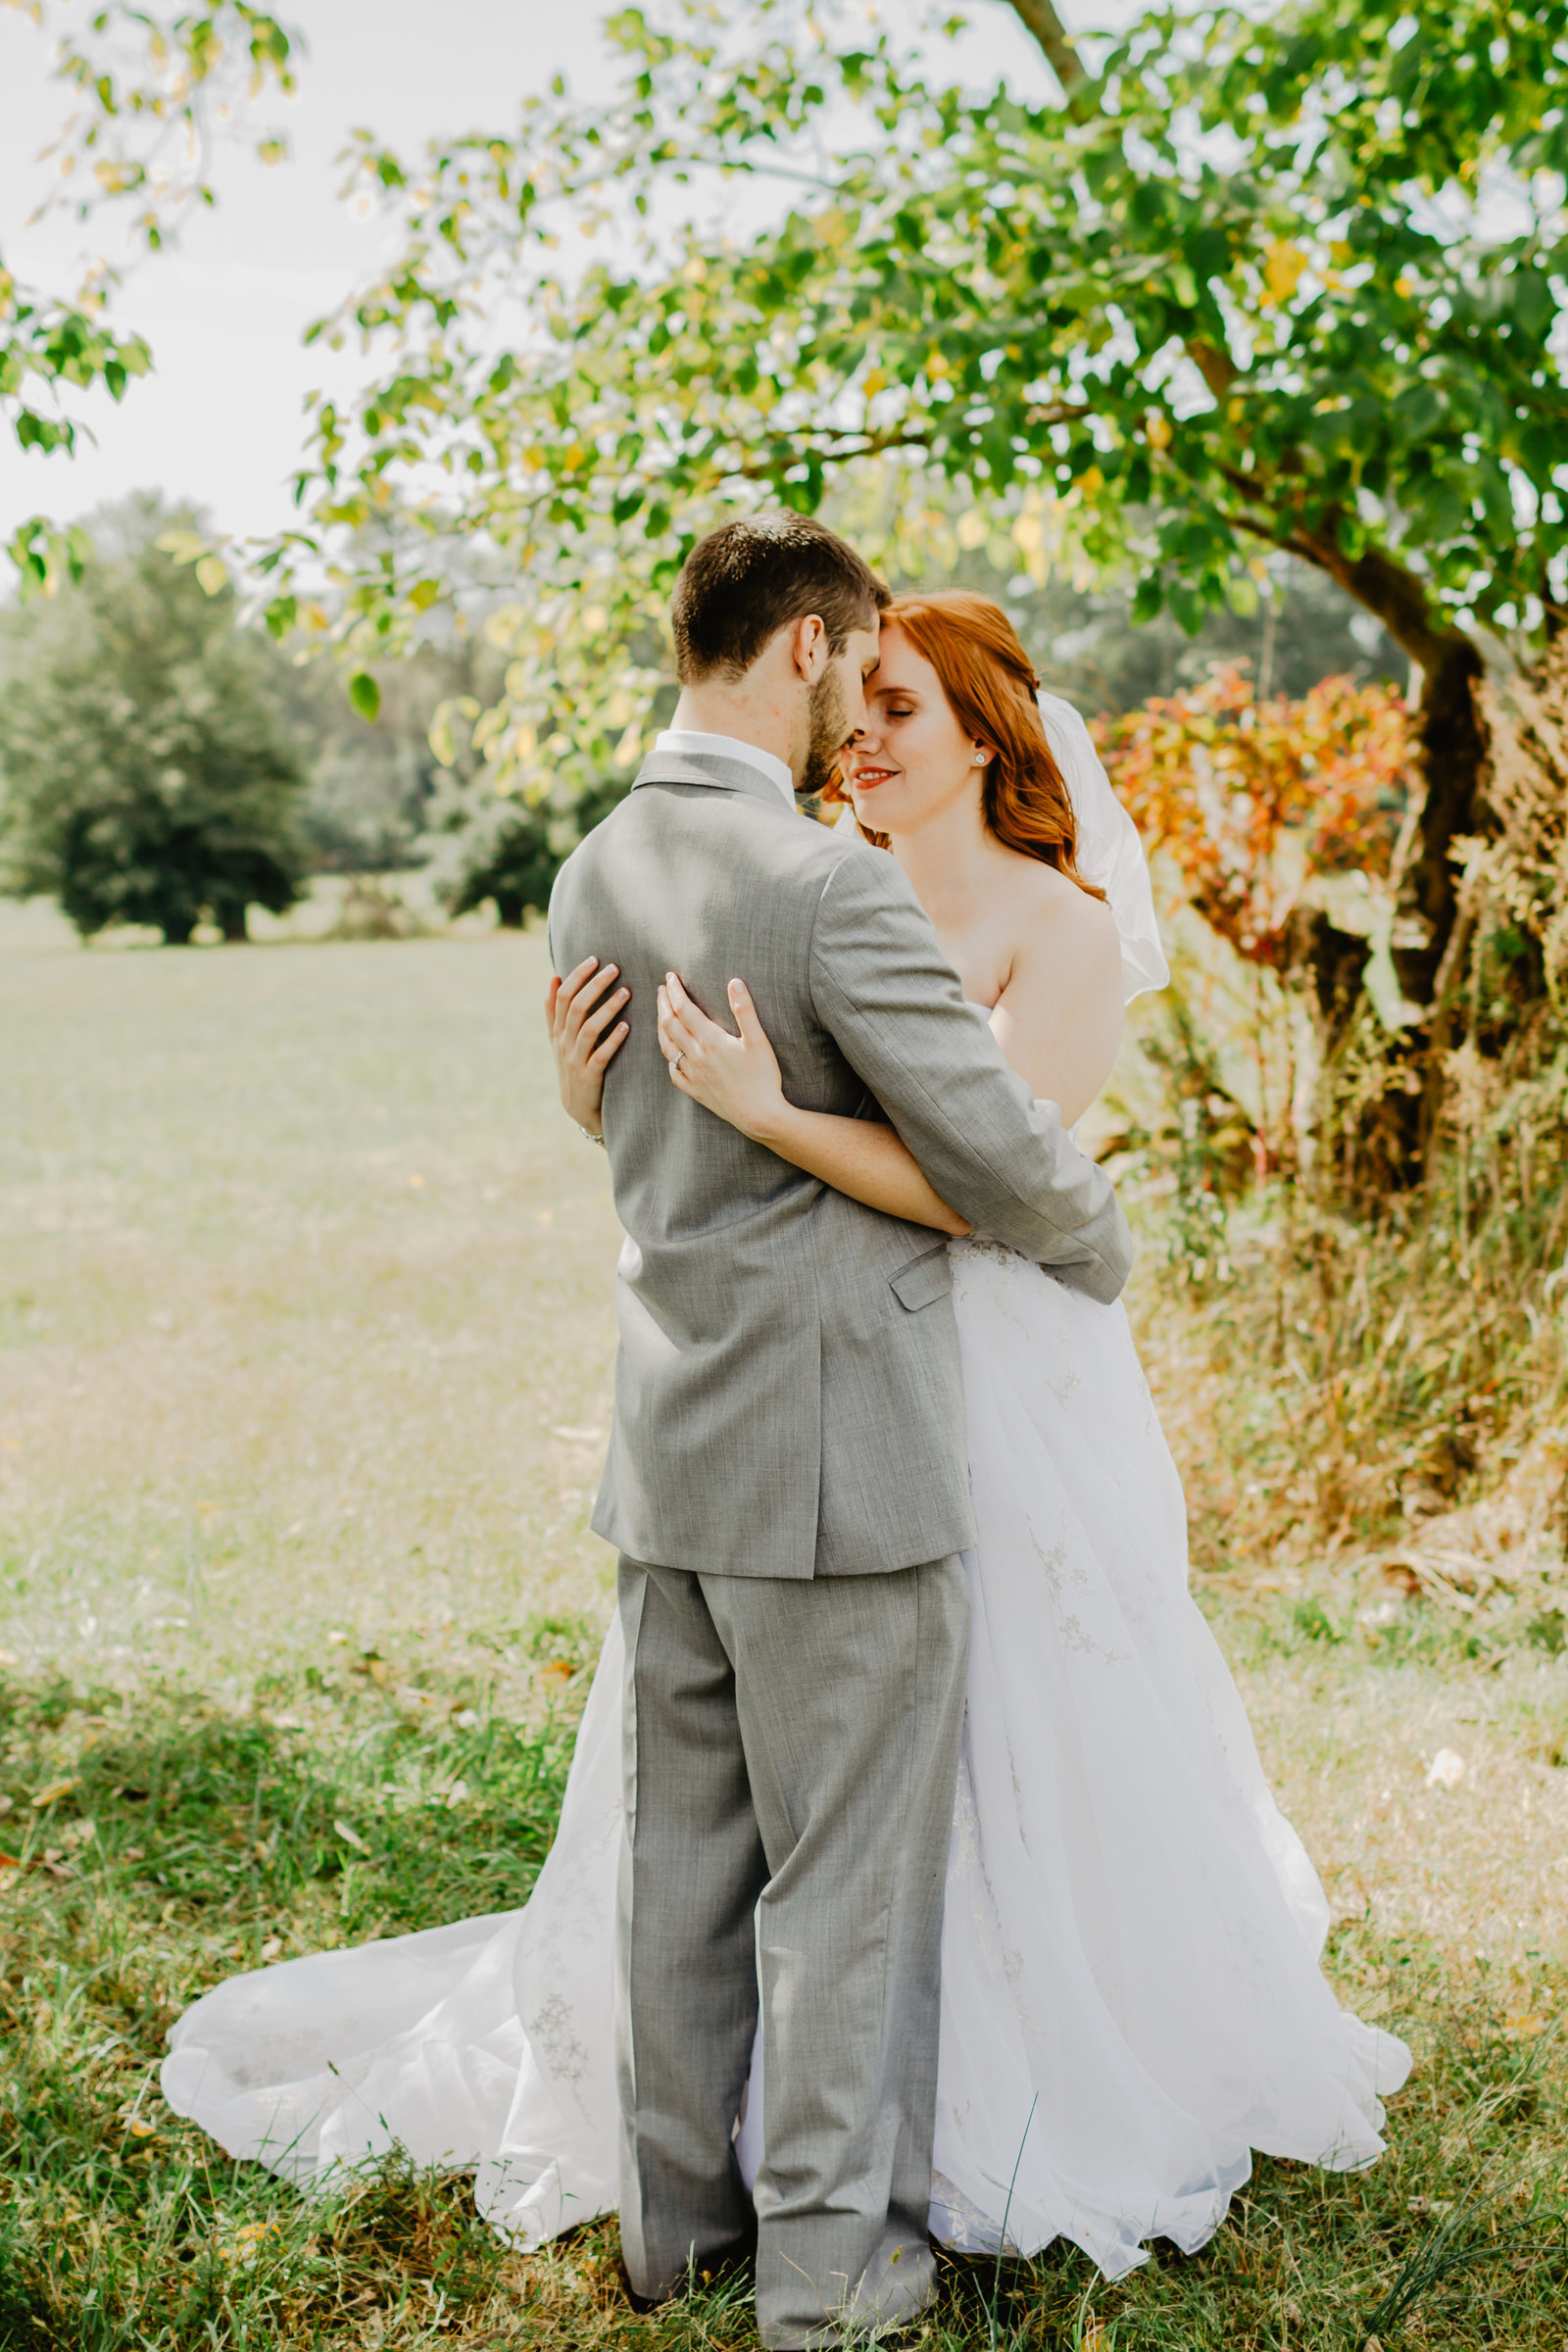 Bride and Groom have moment of silence together in large tree in field.